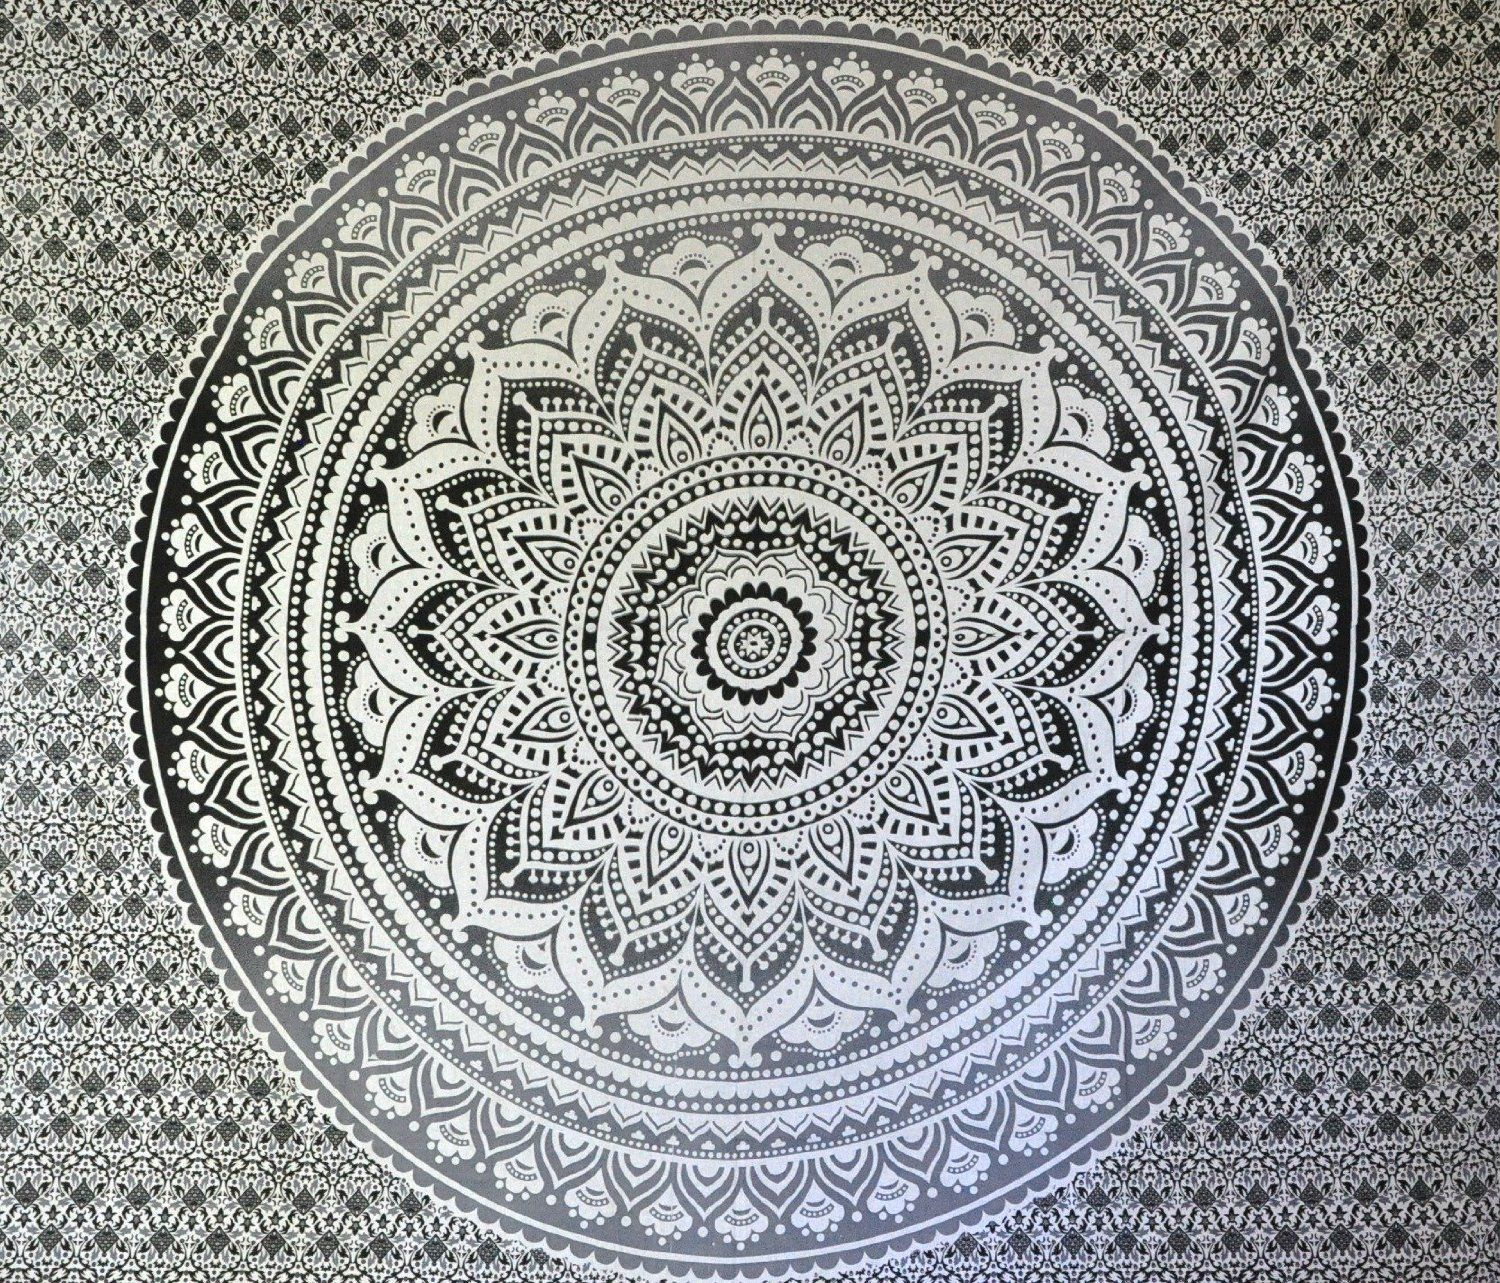 Amazoncom Exclusive Black And White Ombre Tapestry By Jaipurhandloom Mandala